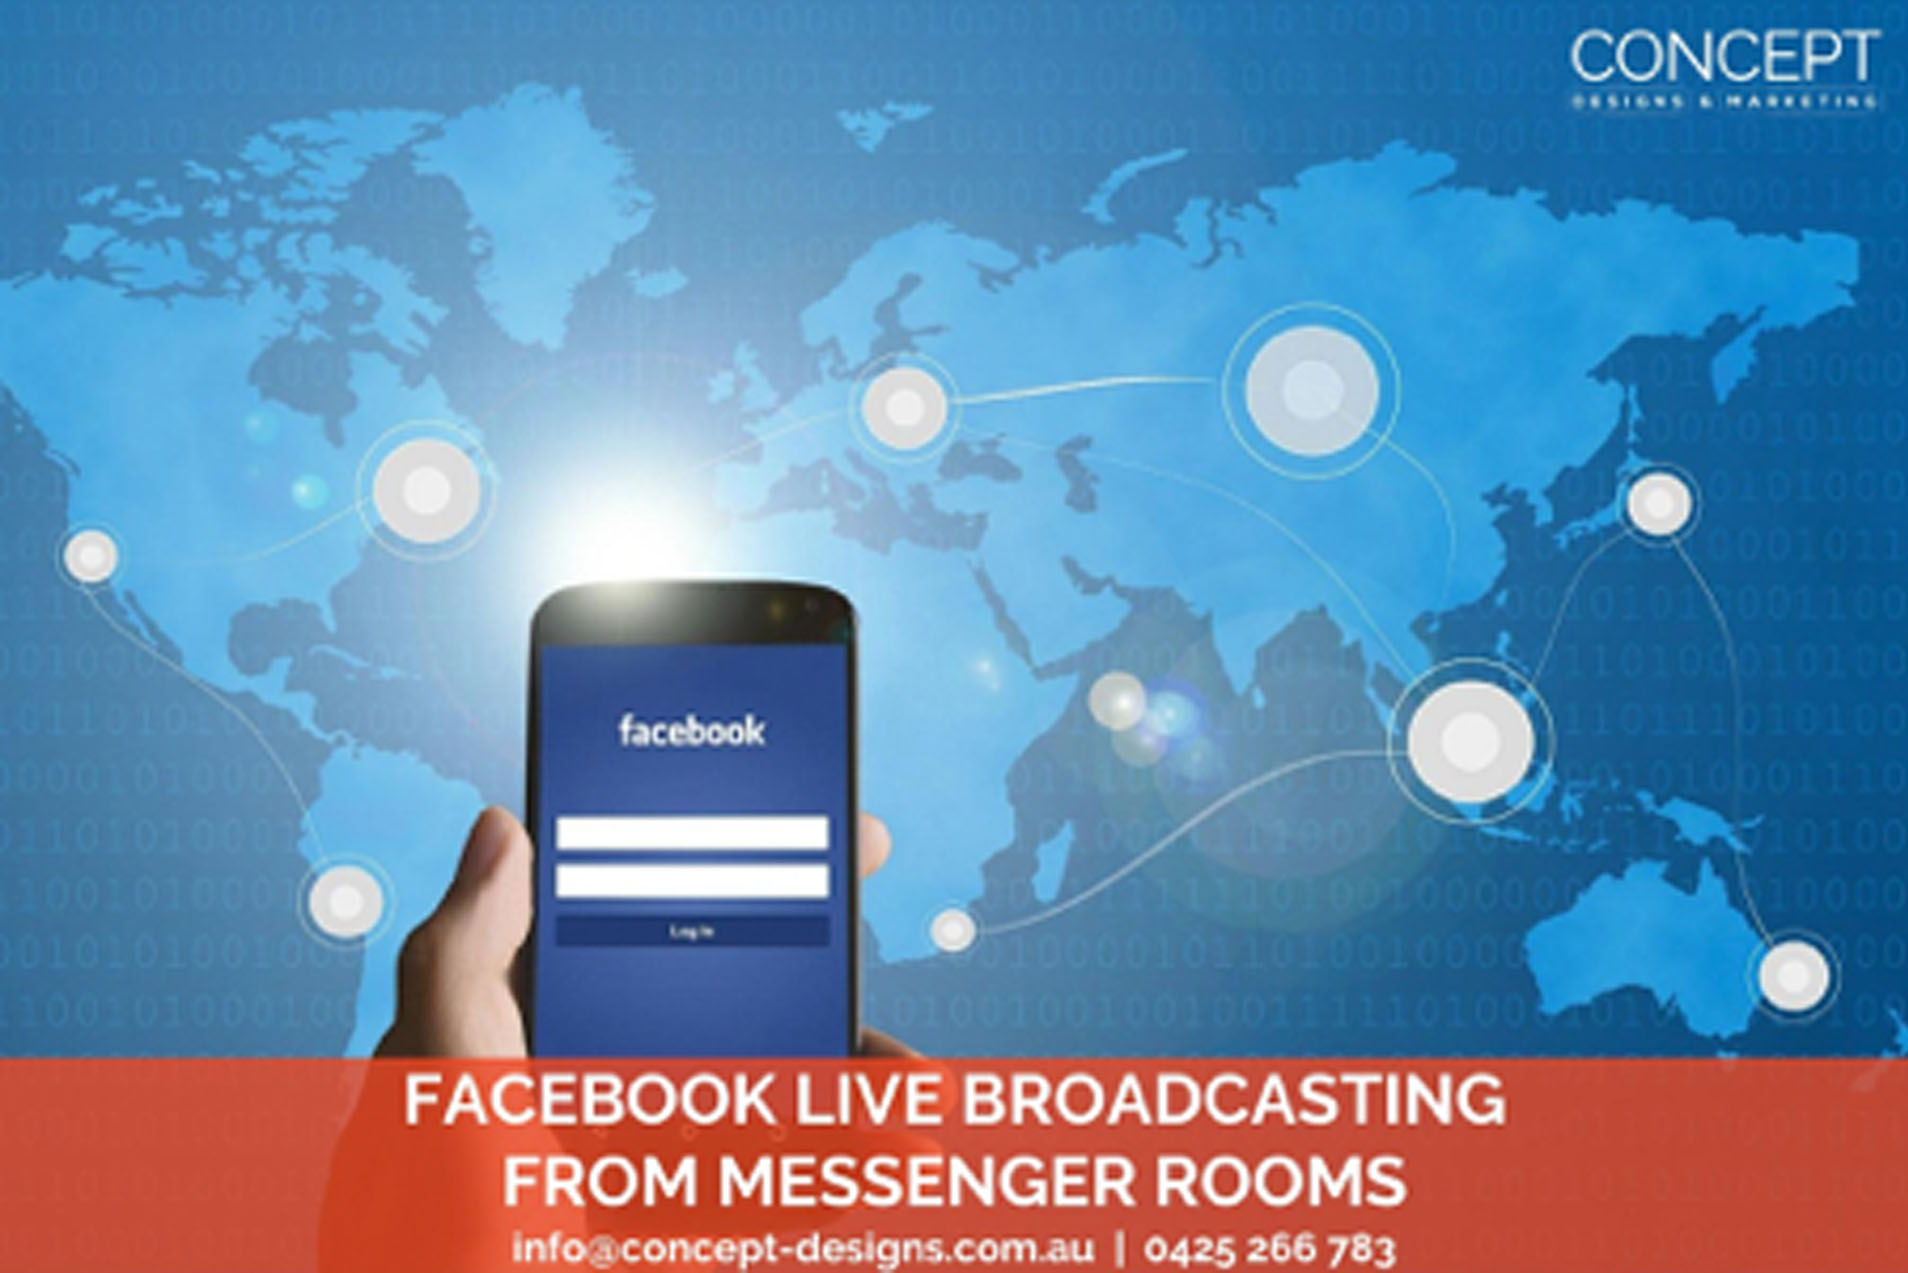 Facebook Live Broadcasting from Messenger Rooms